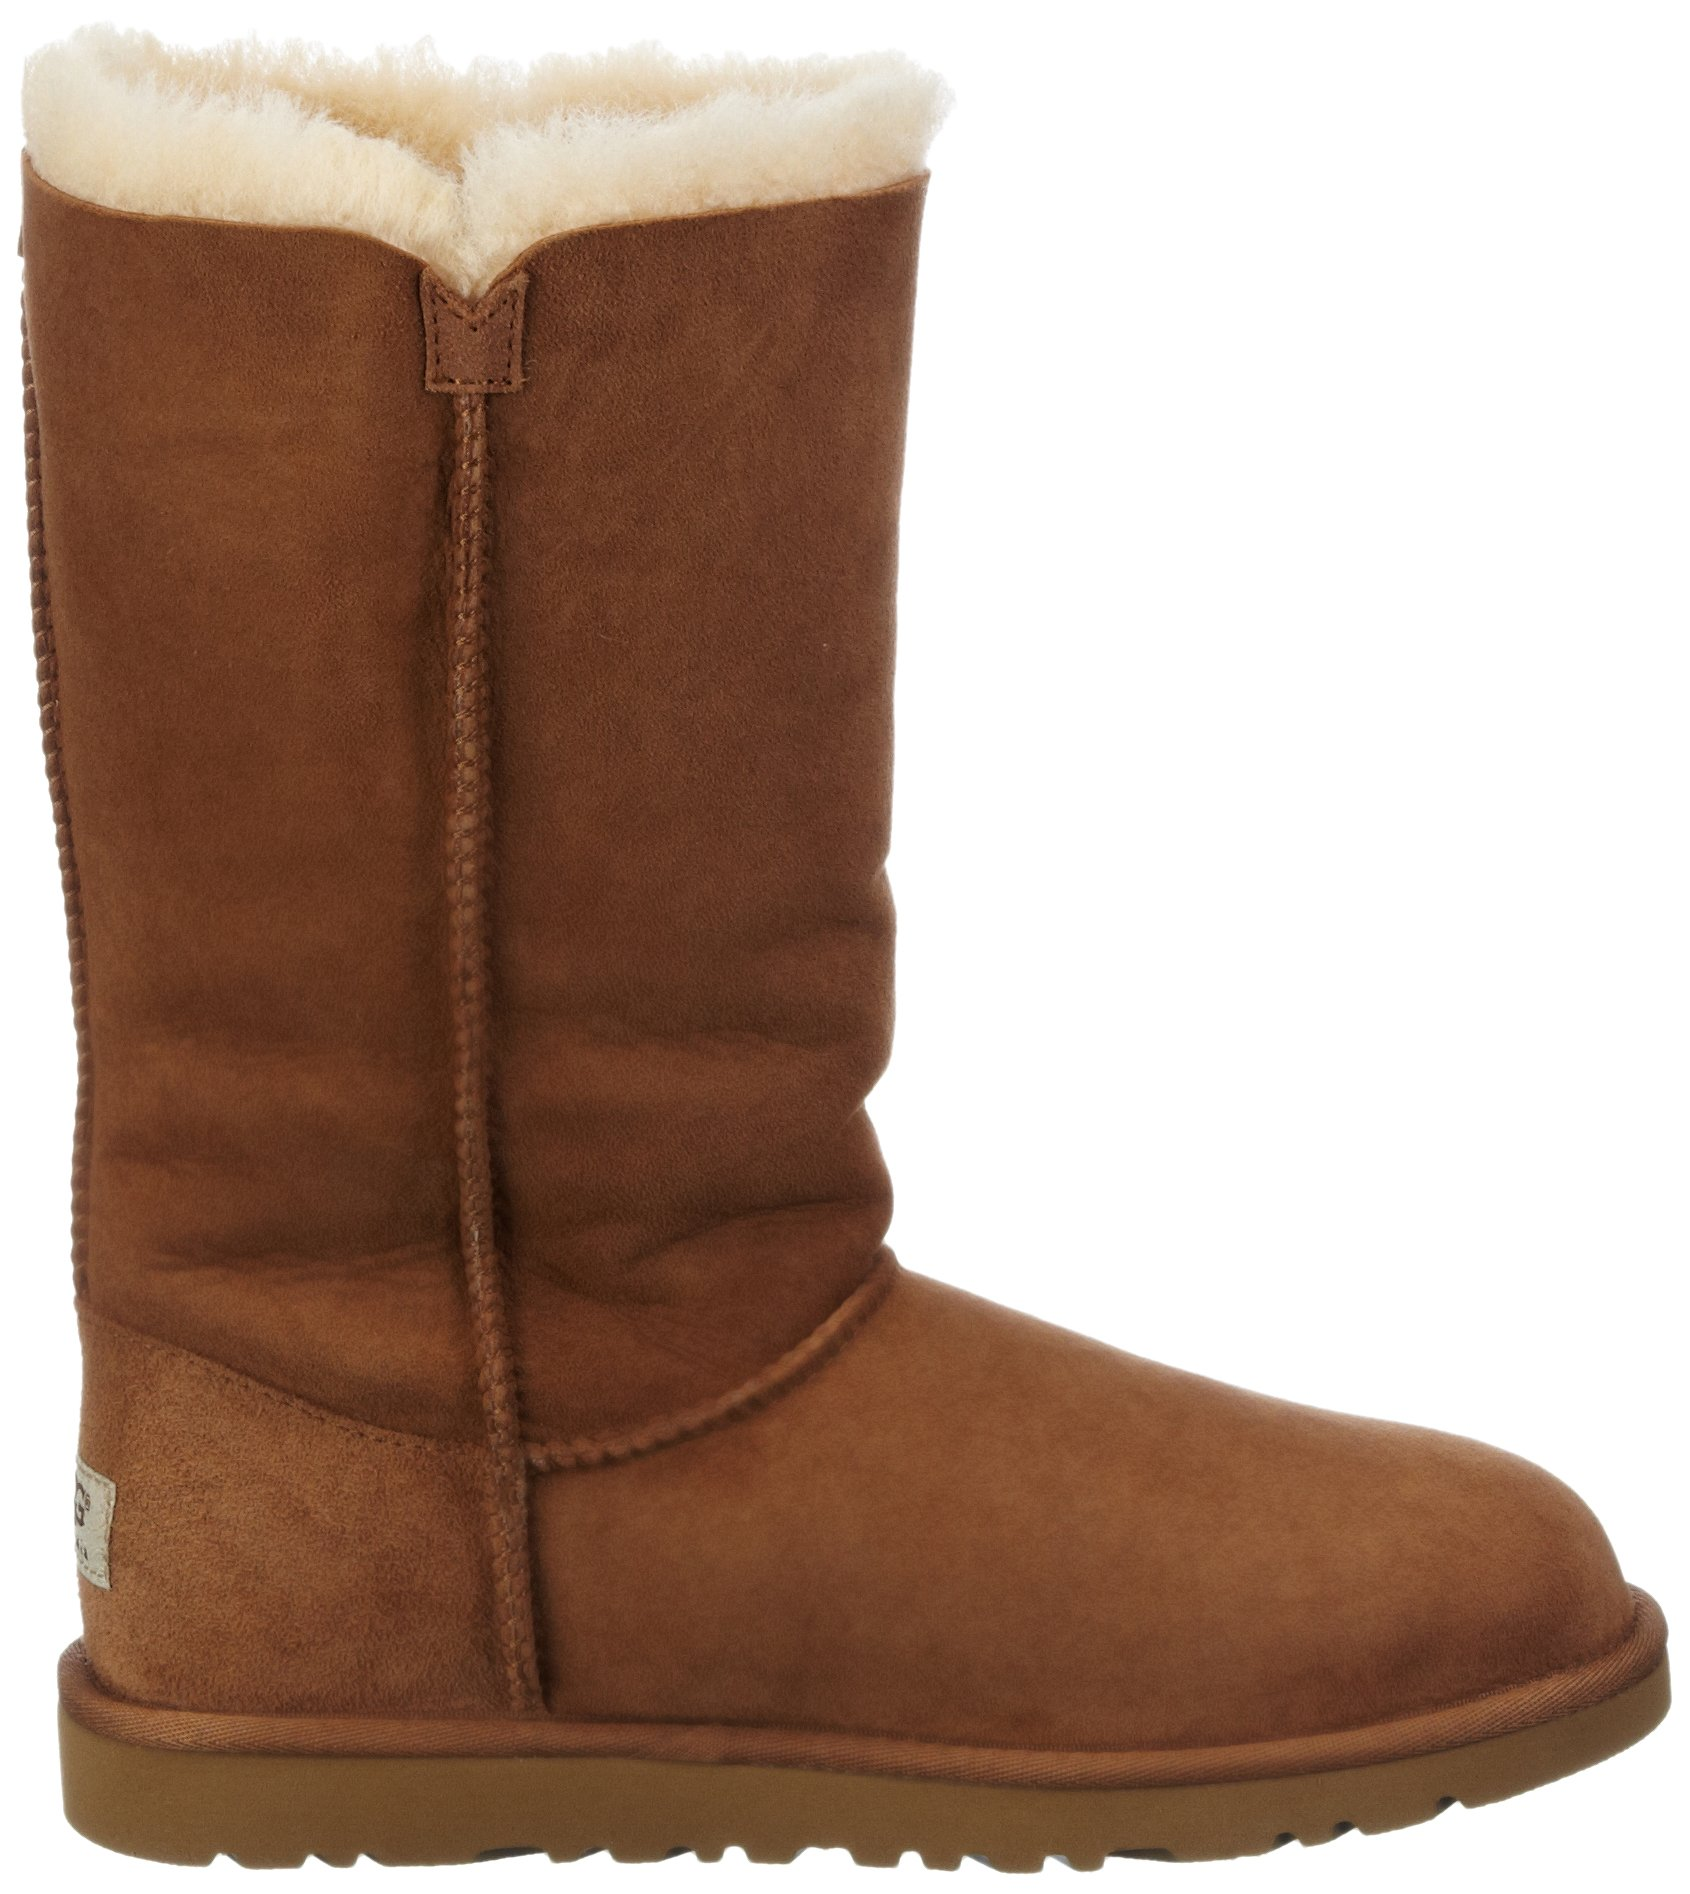 Kid's UGG Bailey Button Triplet chestnut size 4 us by UGG (Image #6)